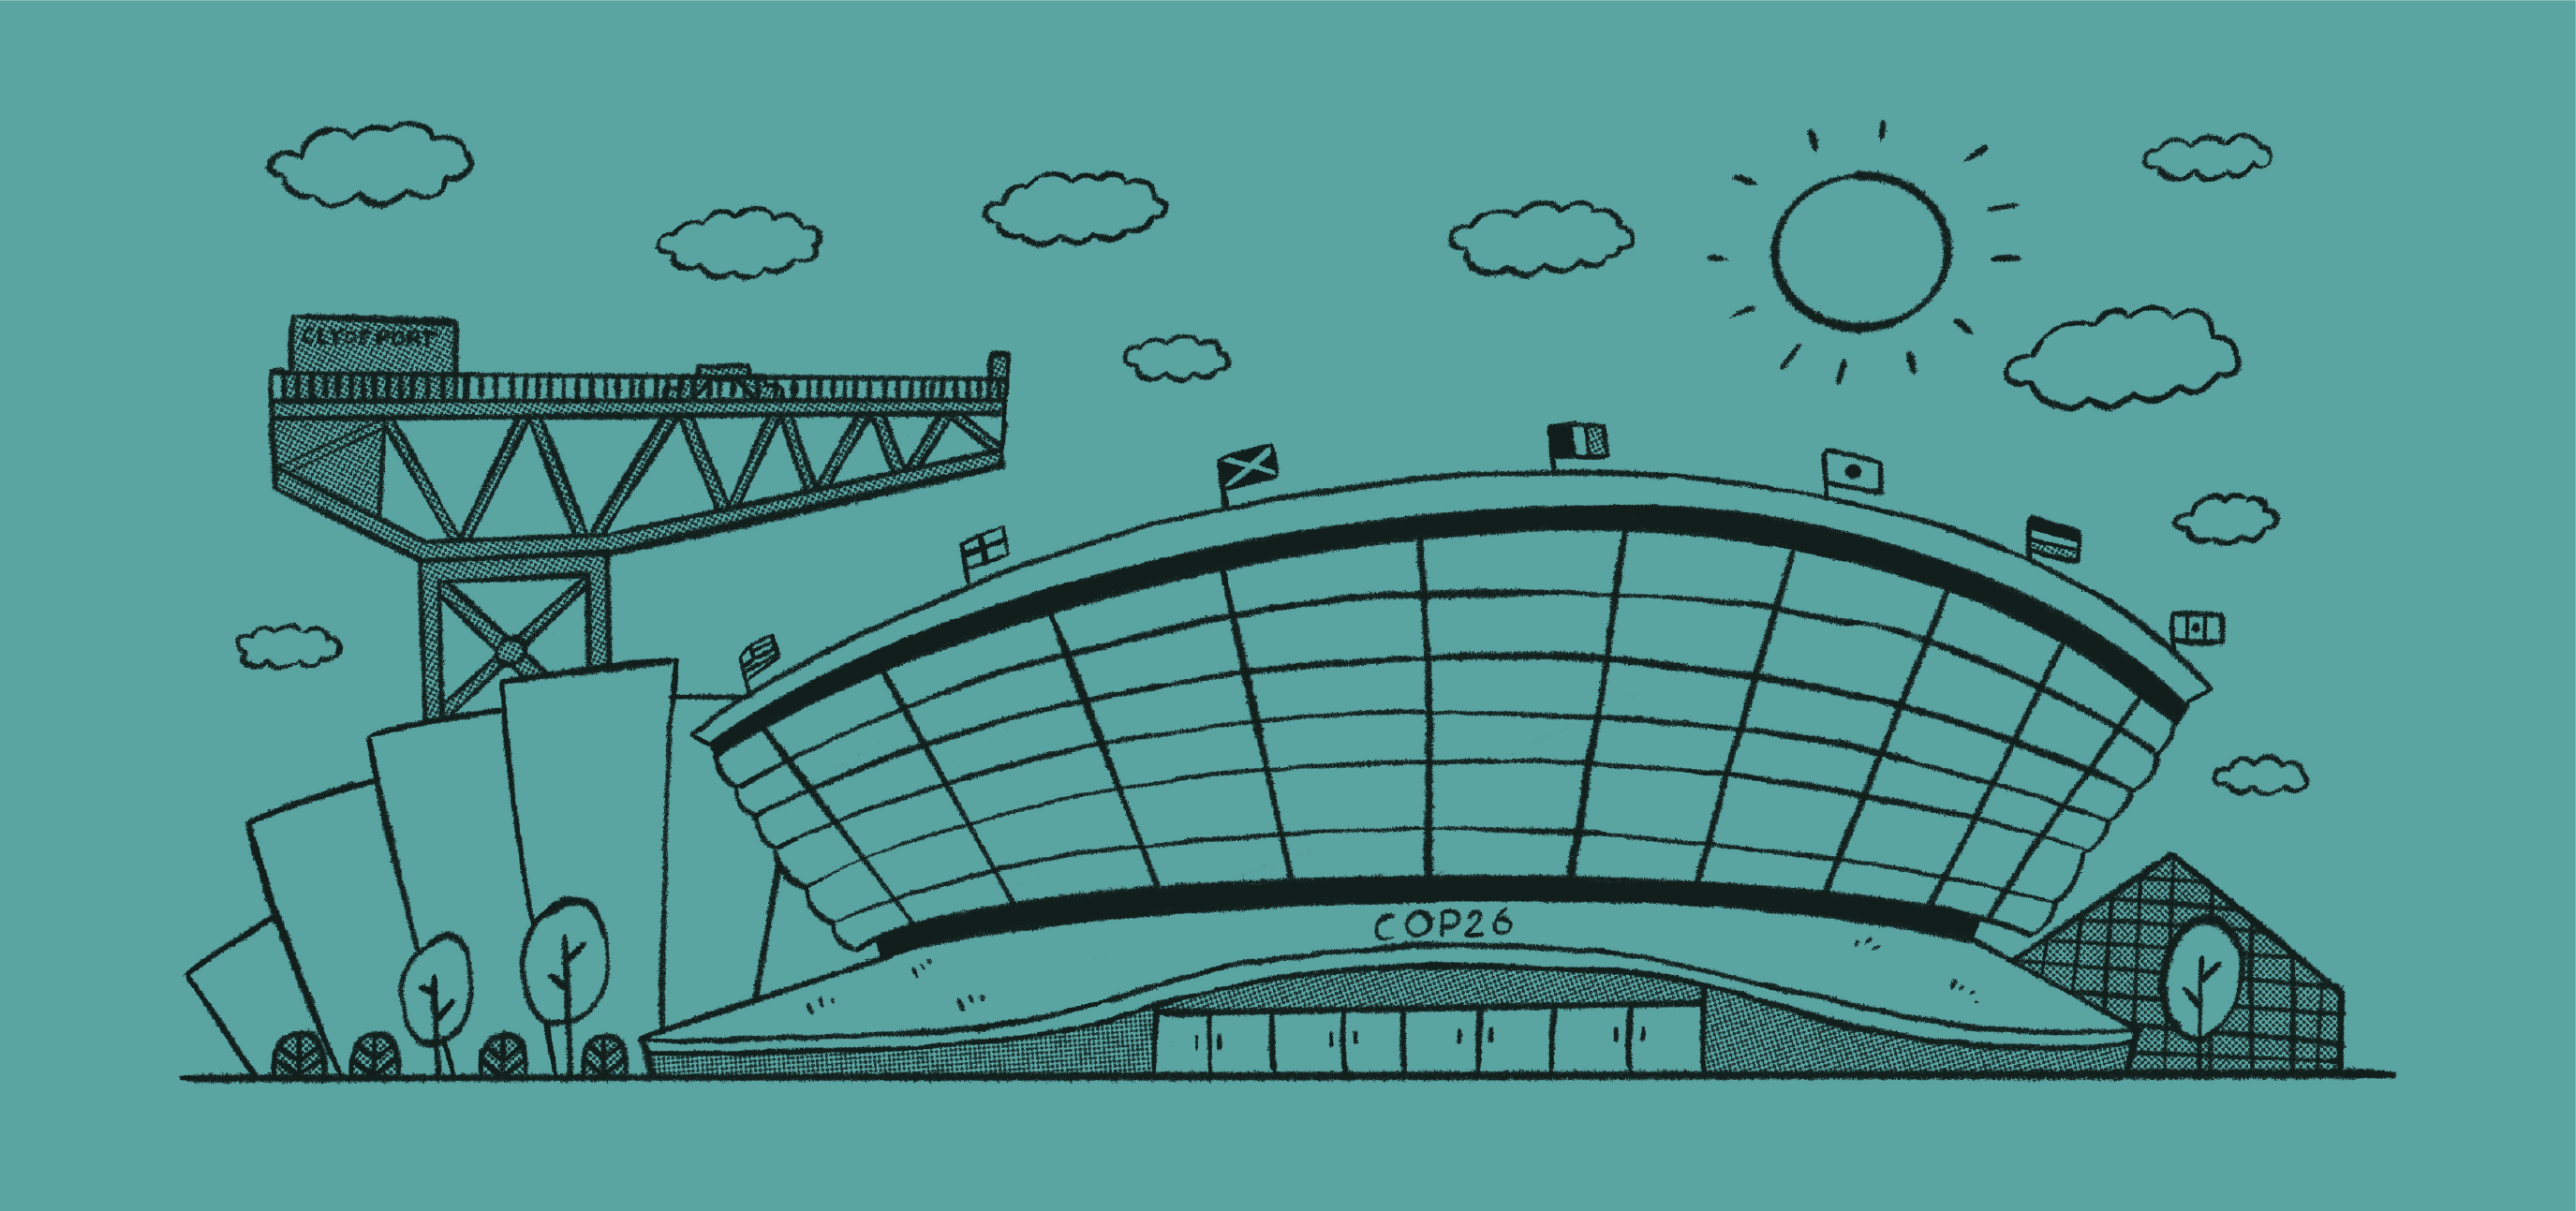 A turquoise illustration of the Scottish Exhibition Centre in Glasgow.